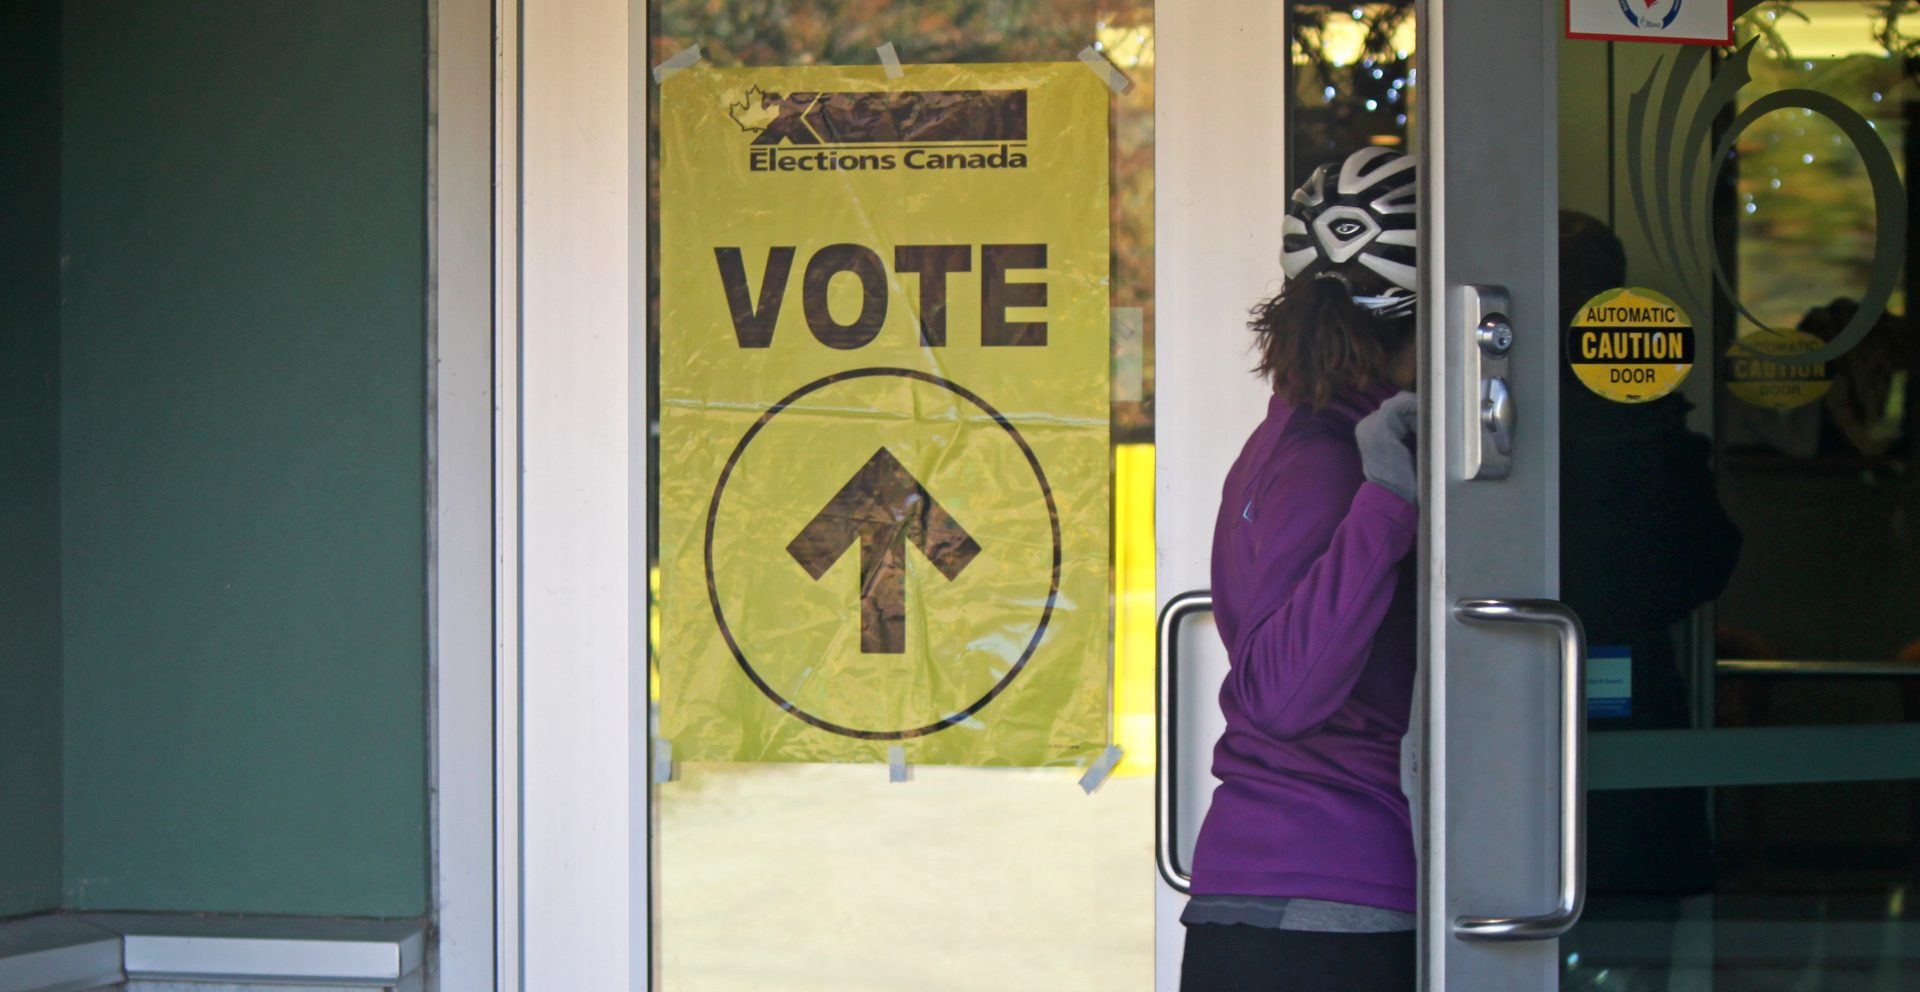 Advance voting is open across Canada this weekend